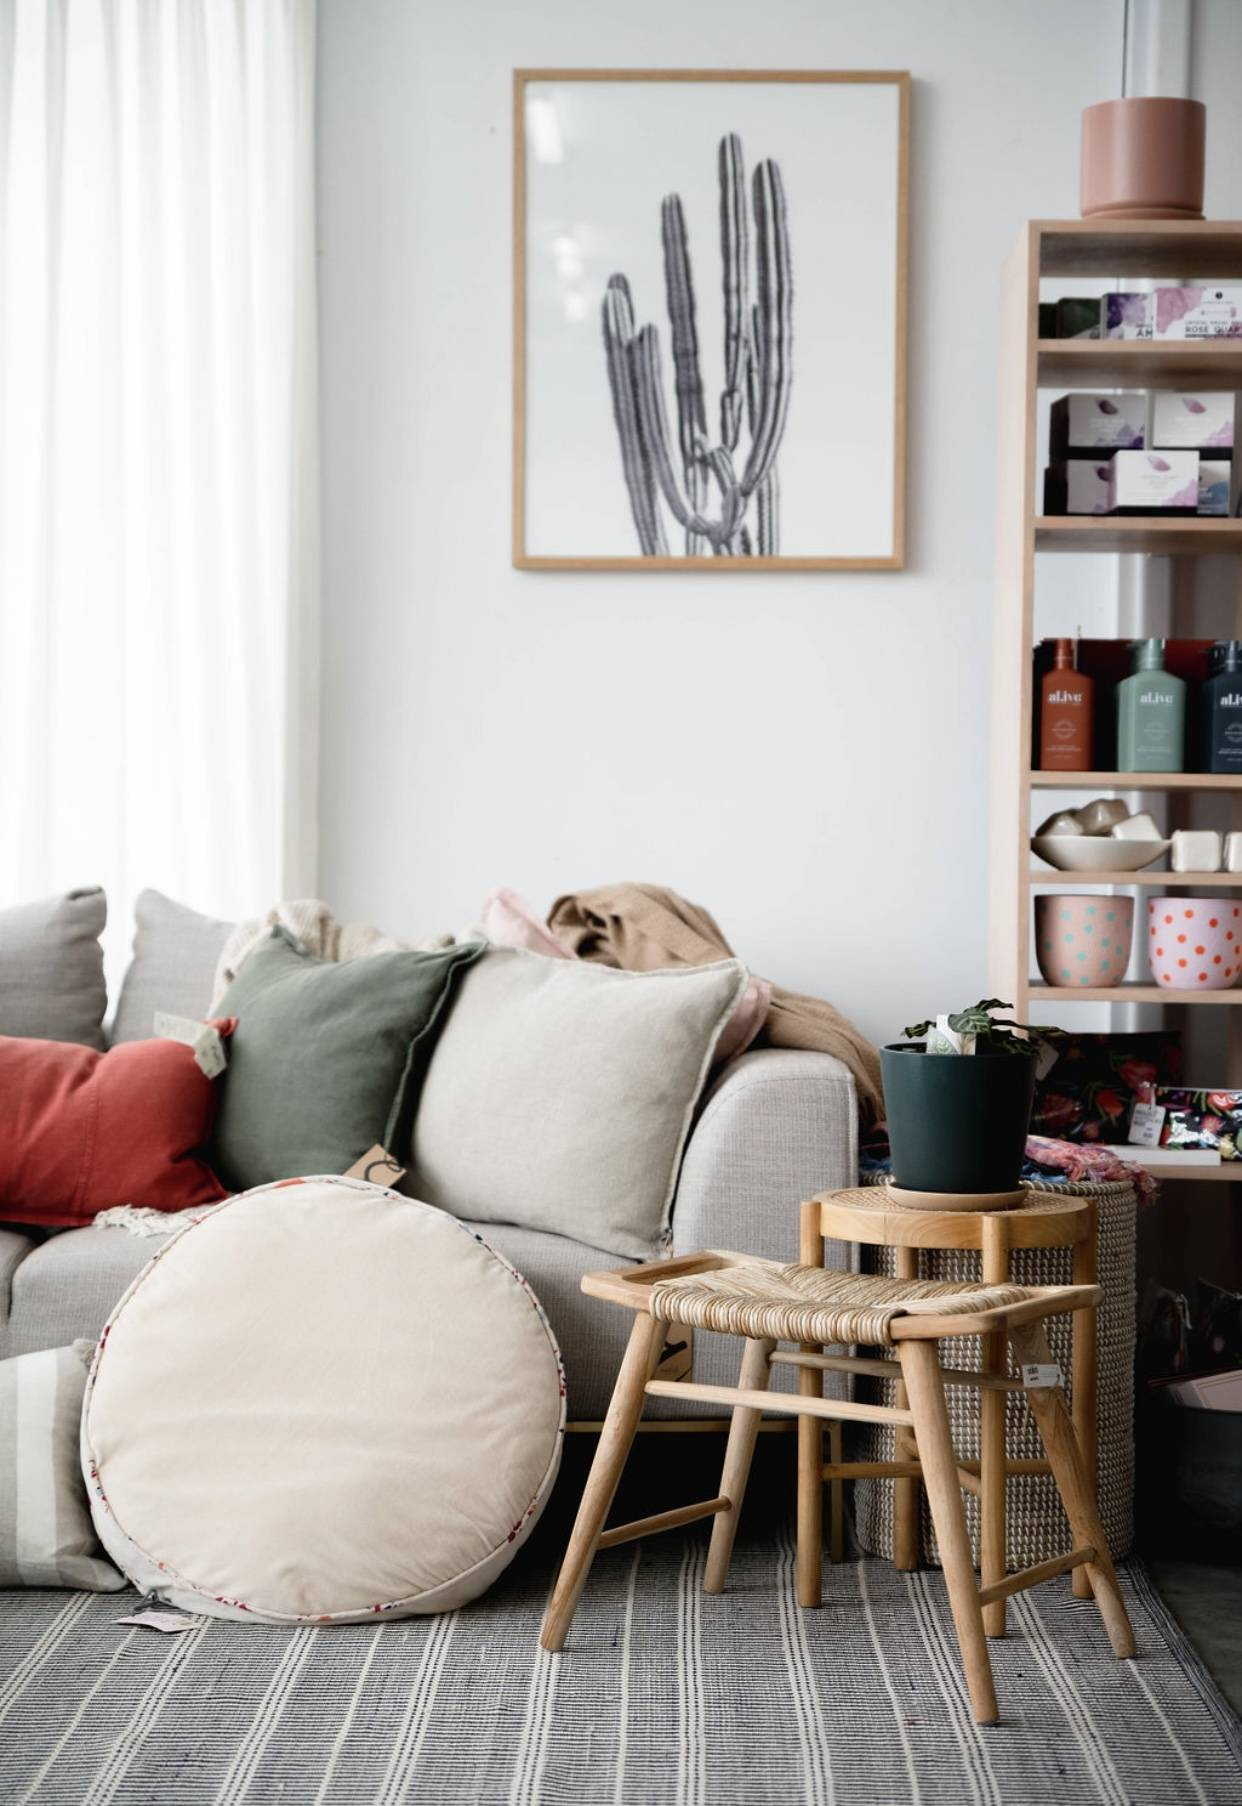 Picture of a room- grey/ beige lounge with cushions- some square, some round. All neutral tones. Walls are white with a large print of a cactus. This is a room in Style Leaf Co located in Katanning.